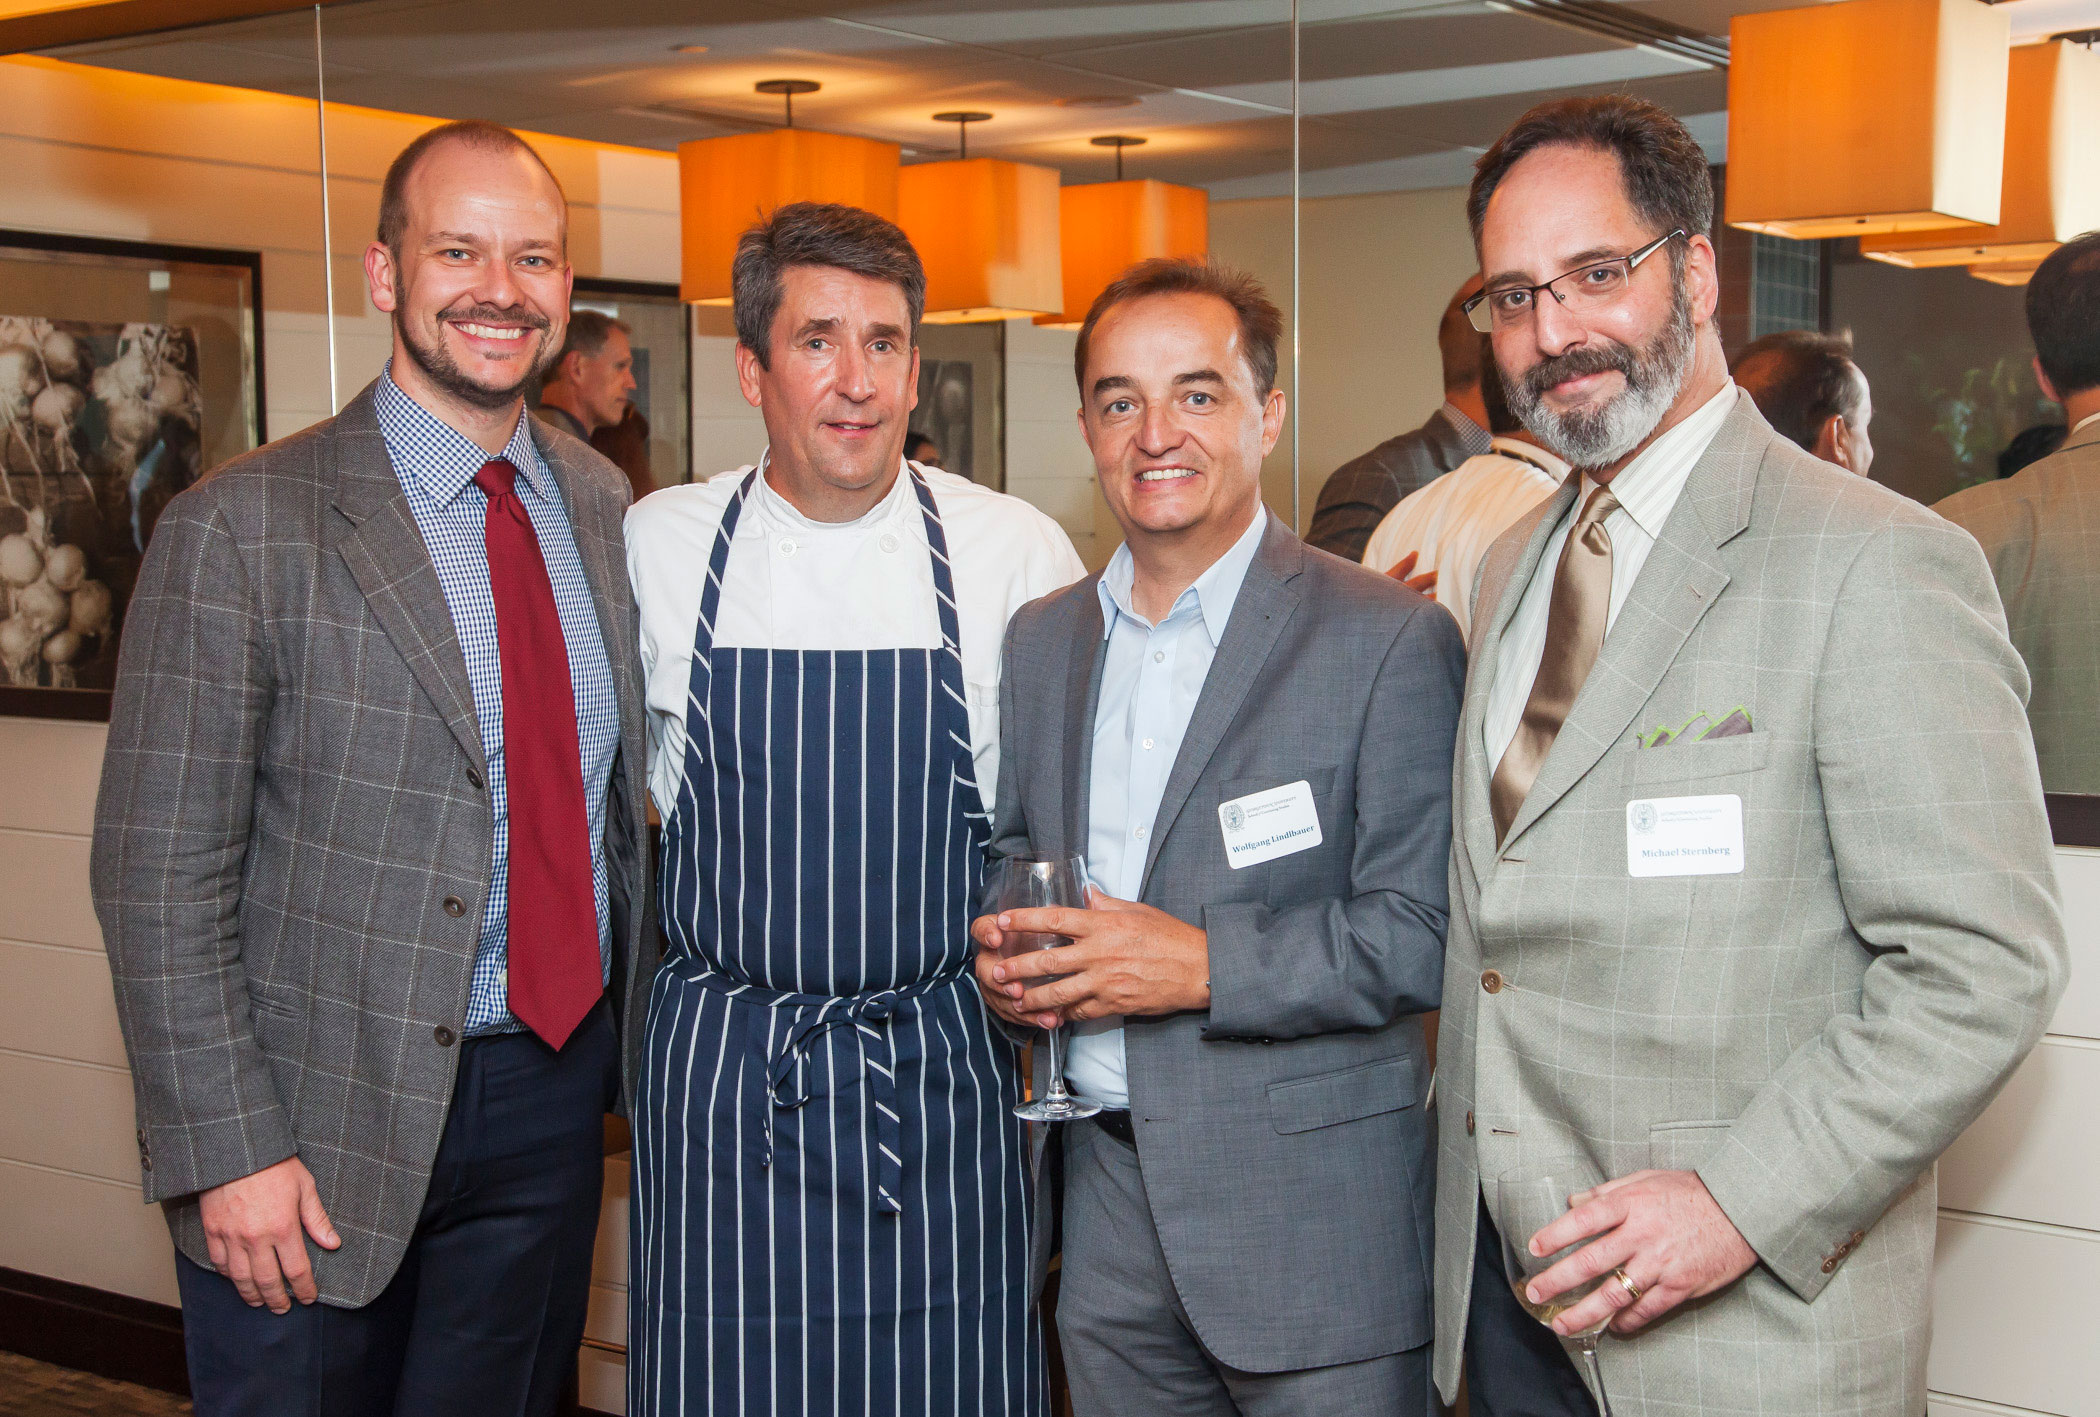 Executive Director Gray Shealy, and panelists, James Beard Award-Winning Chef of Vidalia Jeffrey Buben, Chief Discipline Leader of Global Operations for Marriott International Wolfgang Lindlbauer, and Star Restaurant Group CEO Michael Sternberg prepare for a discussion on brand evolution in the food and beverage industry.